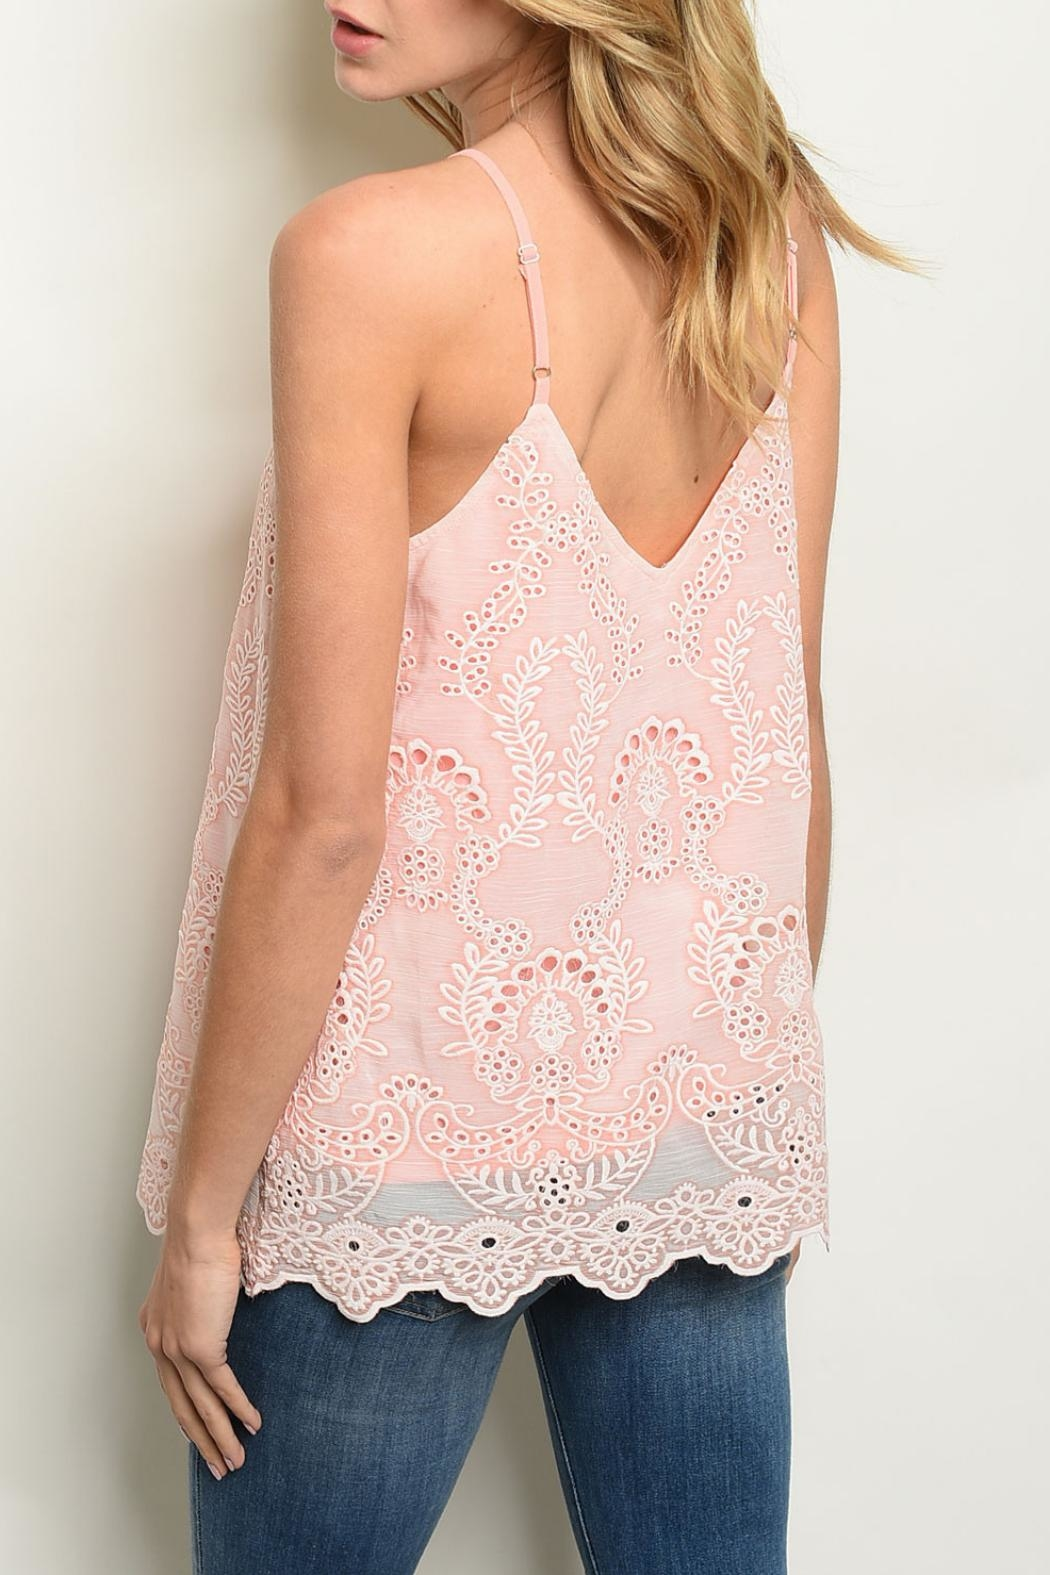 Entro Peach Crochet Top - Front Full Image